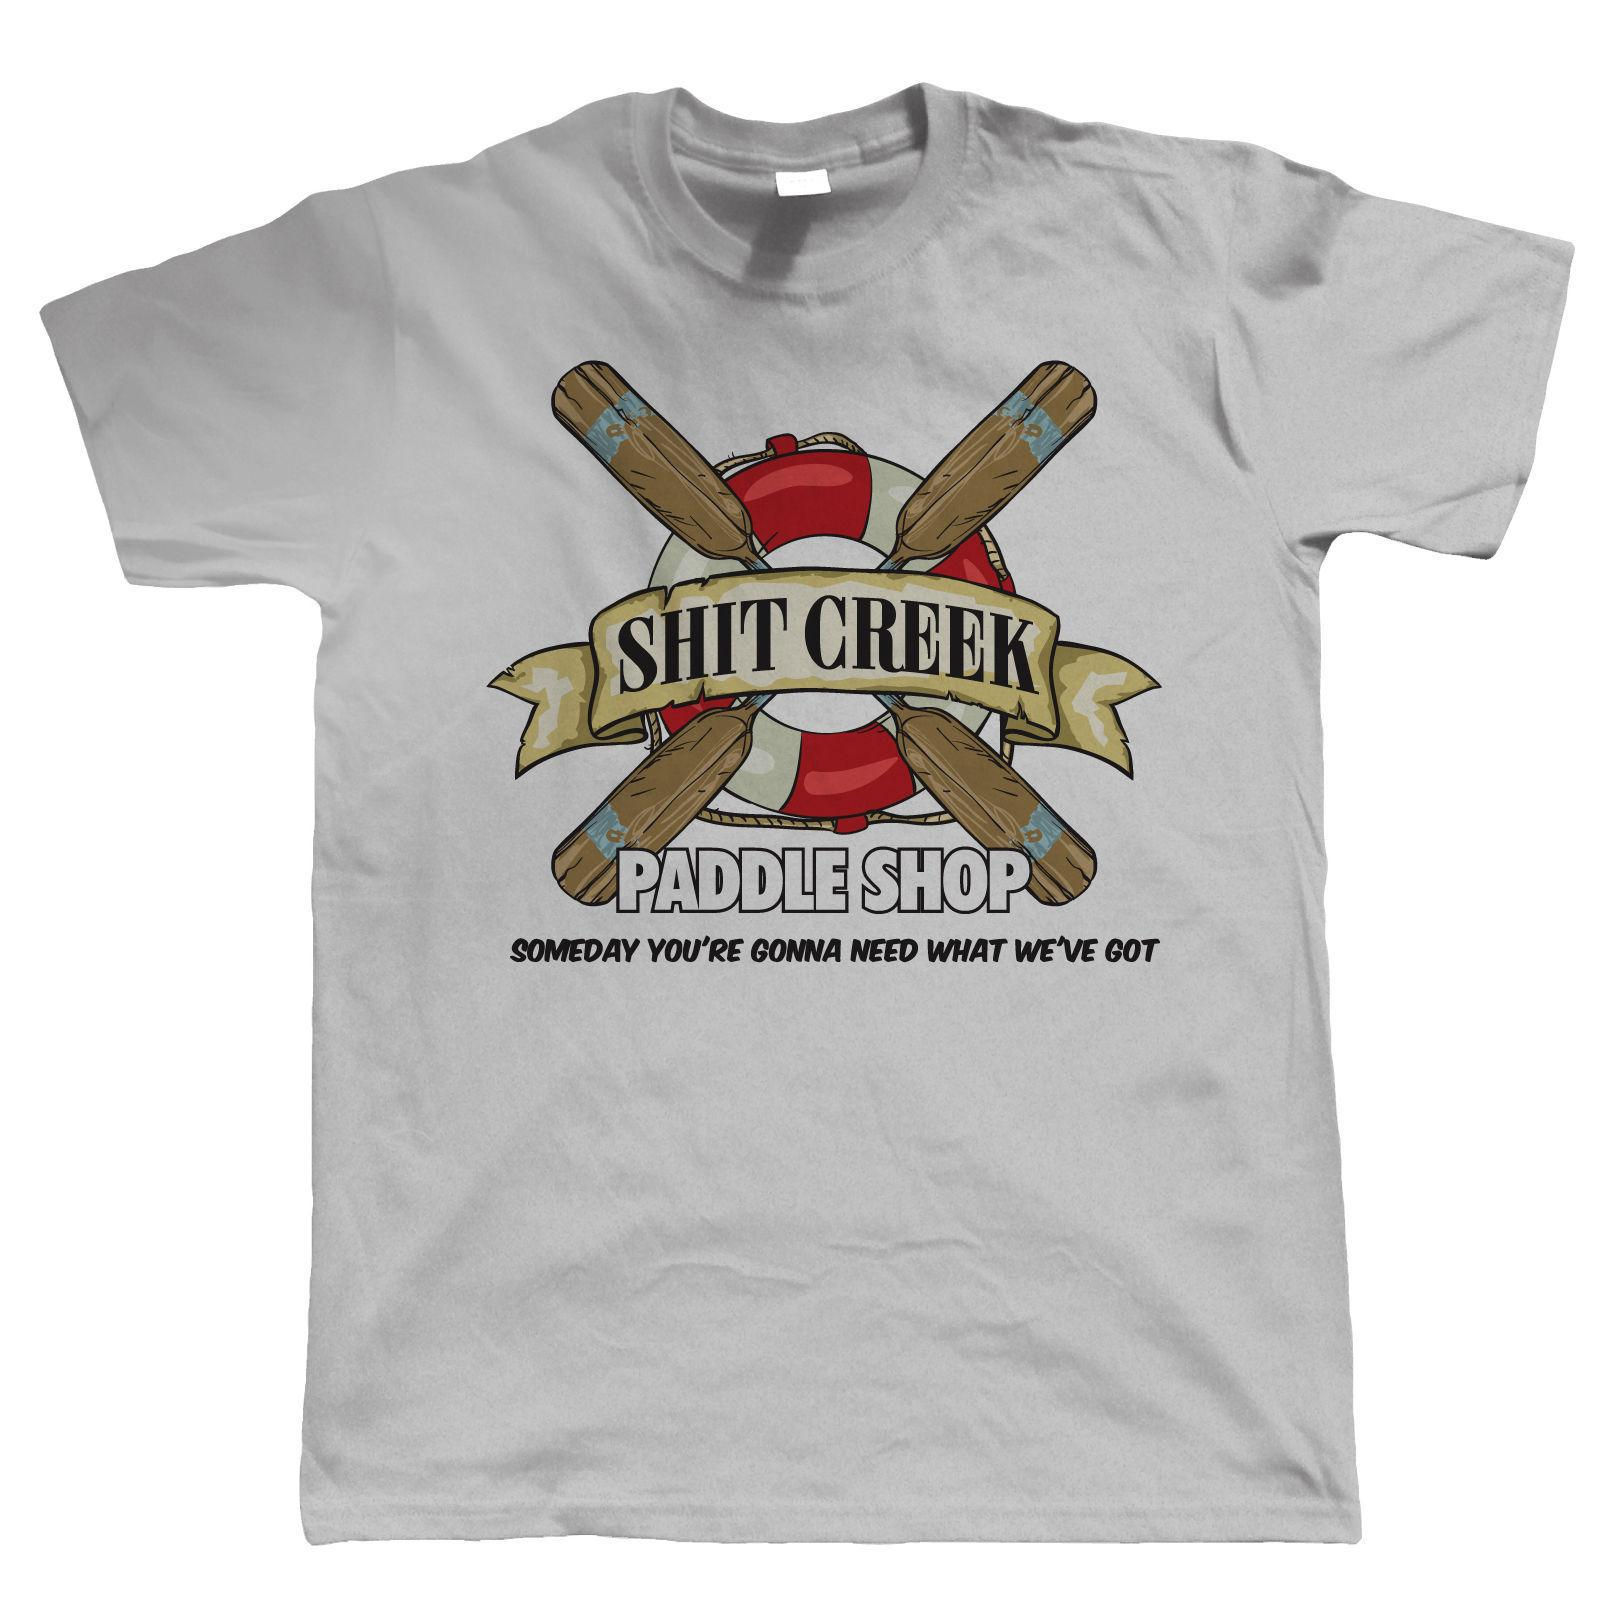 52d4ea0c6c ShitCreek Paddle Shop Funny Canoeing Kayaking T Shirt Gift For Dad Him  Printed Shirts Design Shirts From Populartees, $11.01  DHgate.Com